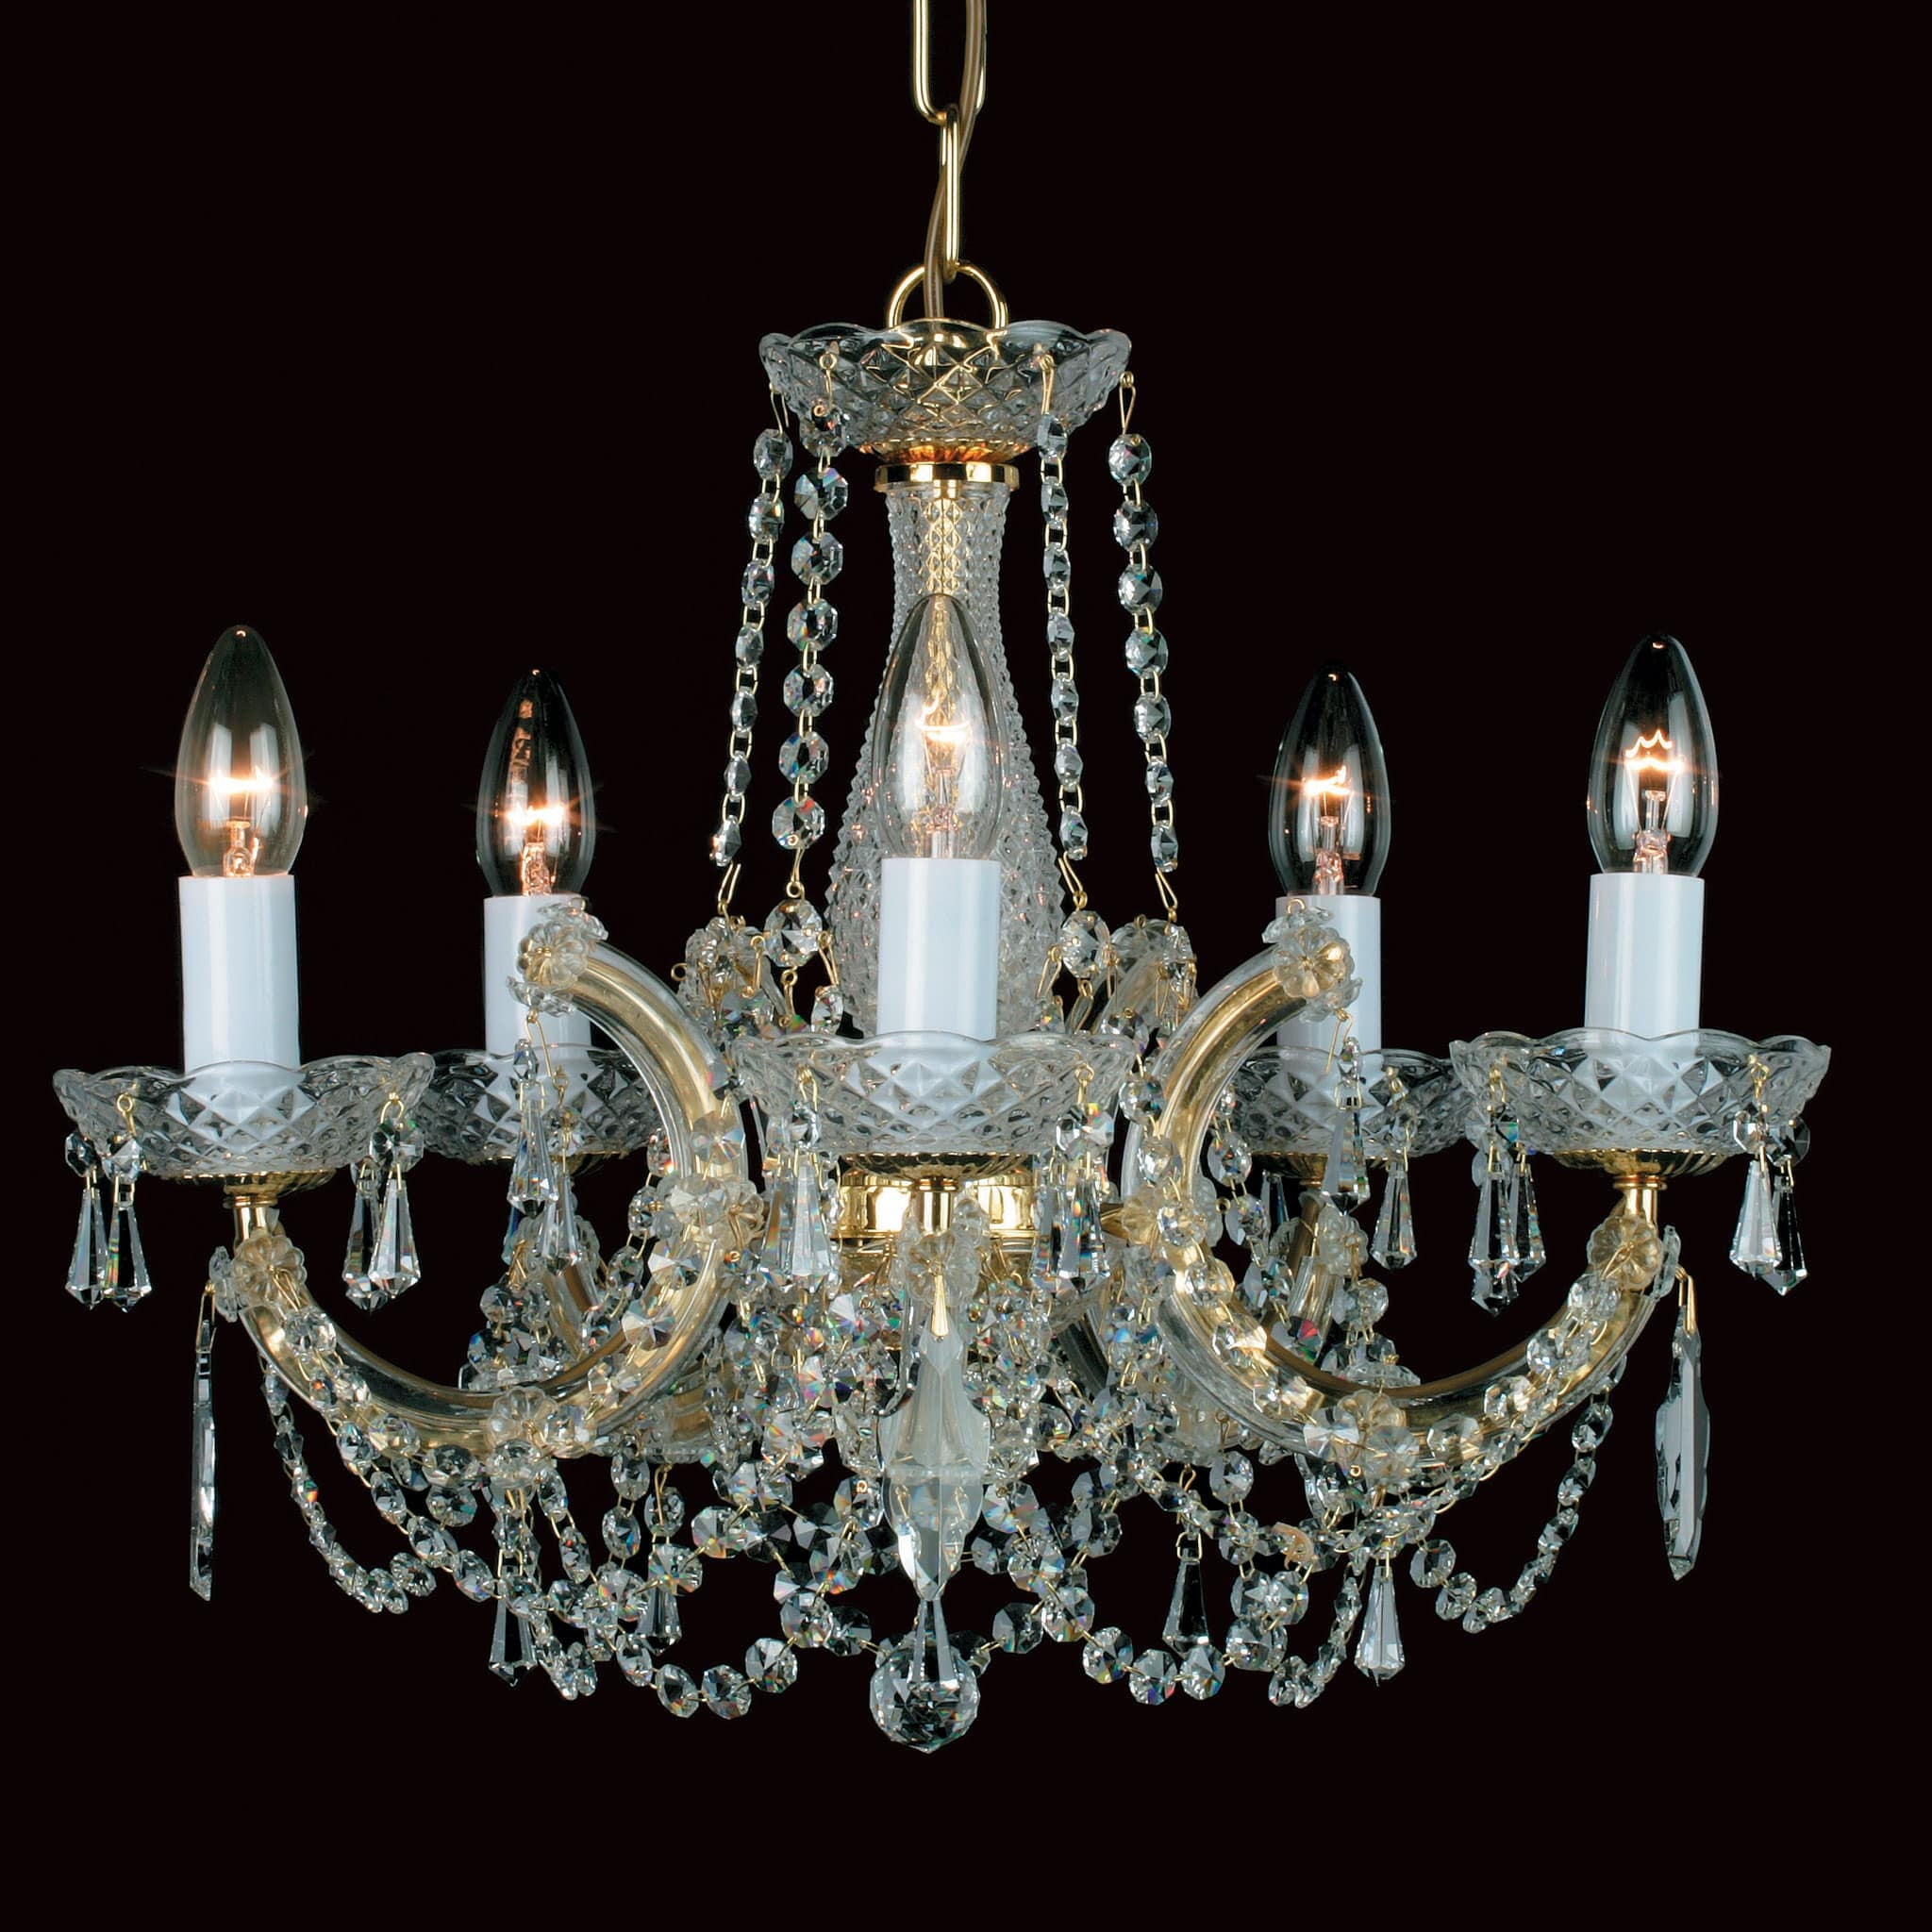 Impex marie therese 5 light gold crystal chandelier chandelier shack impex marie therese 5 light gold crystal chandelier aloadofball Gallery